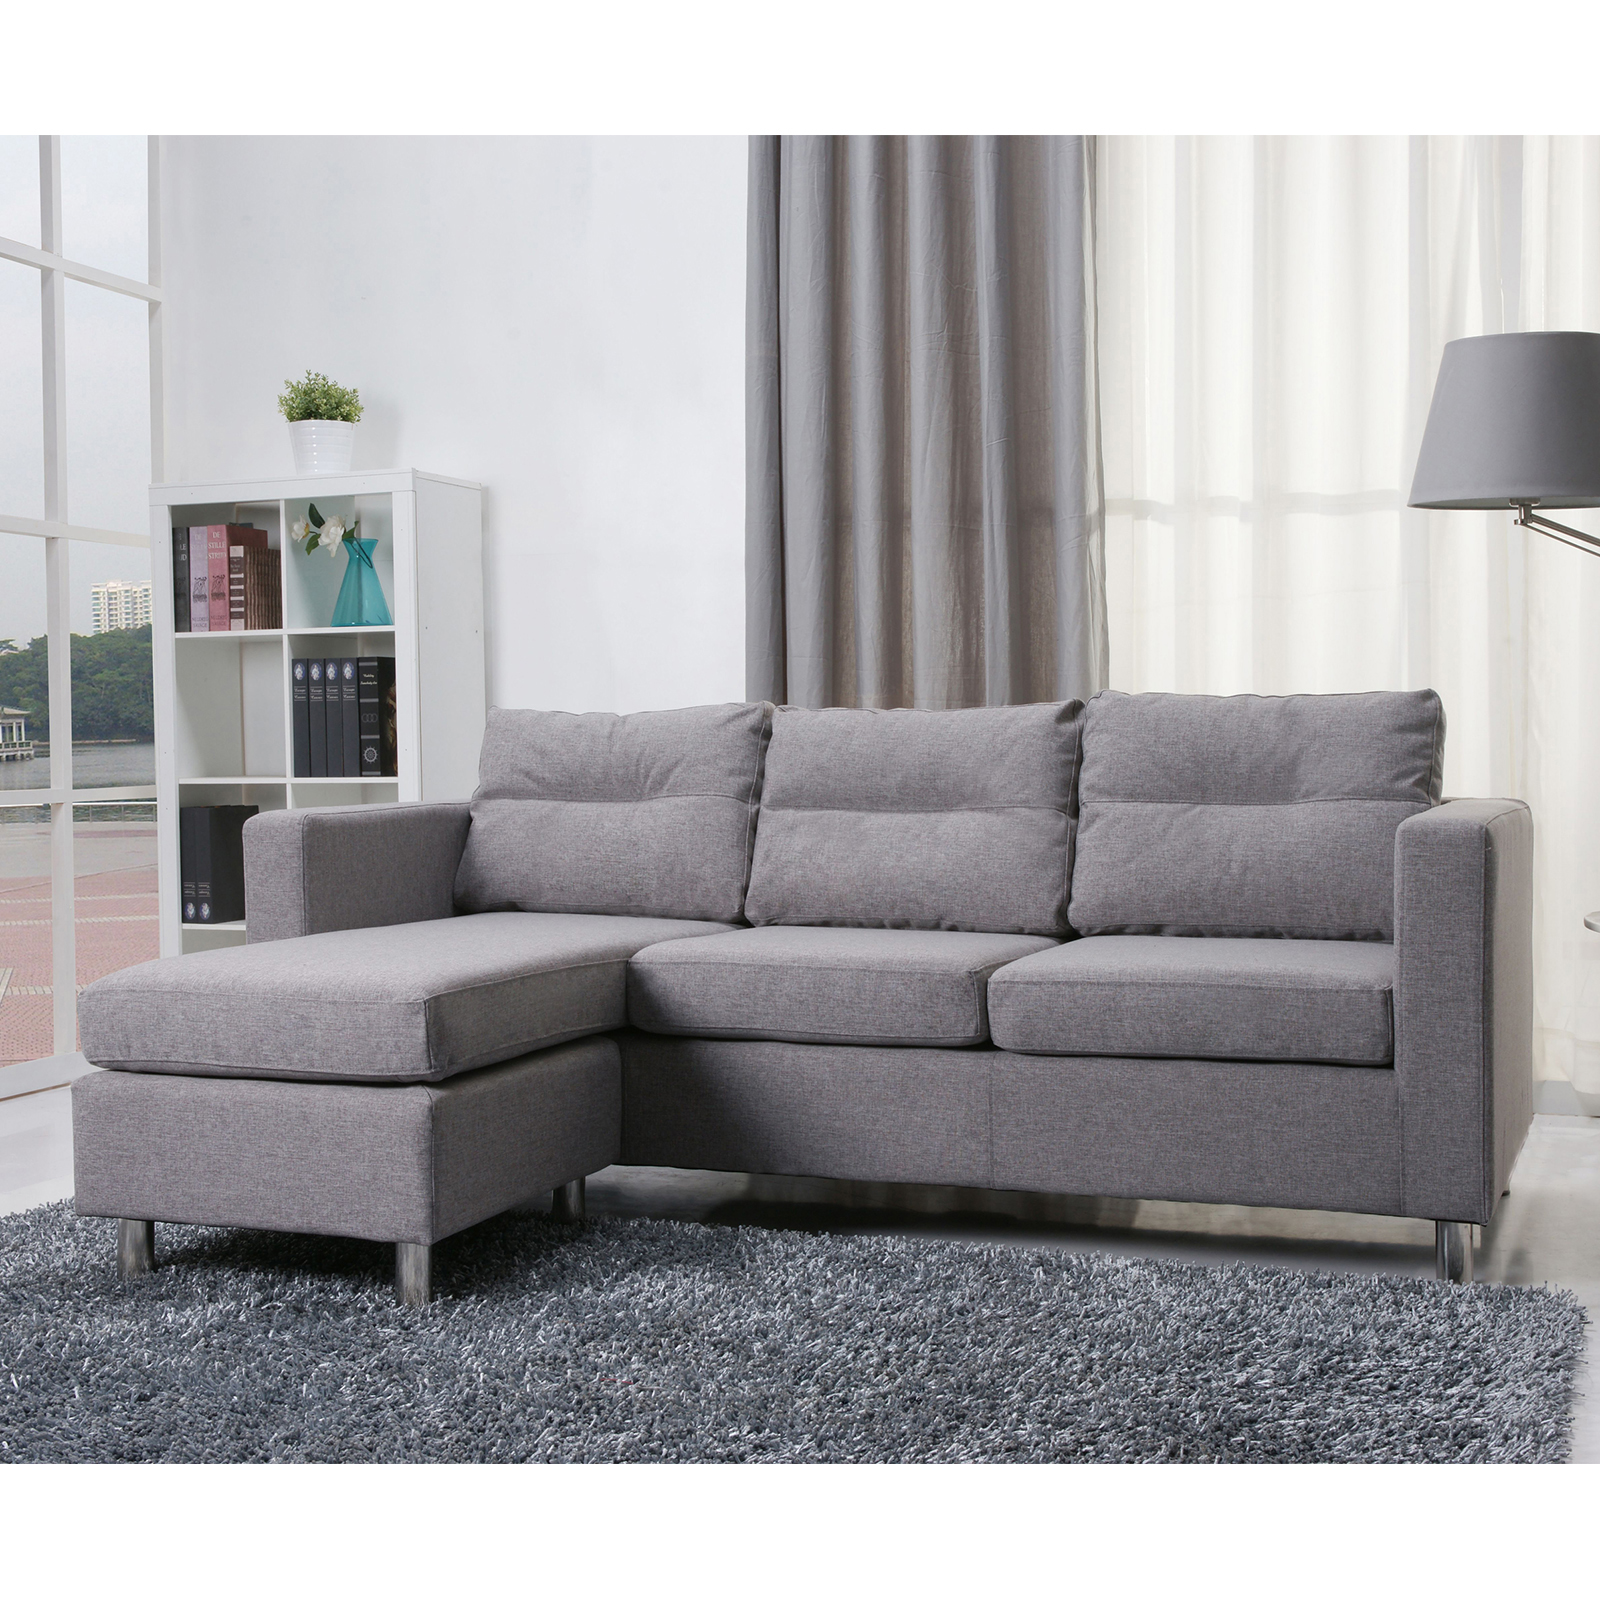 GOLD SPARROW DETROIT FABRIC CONVERTIBLE SECTIONAL SOFA AND OTTOMAN SET ASH